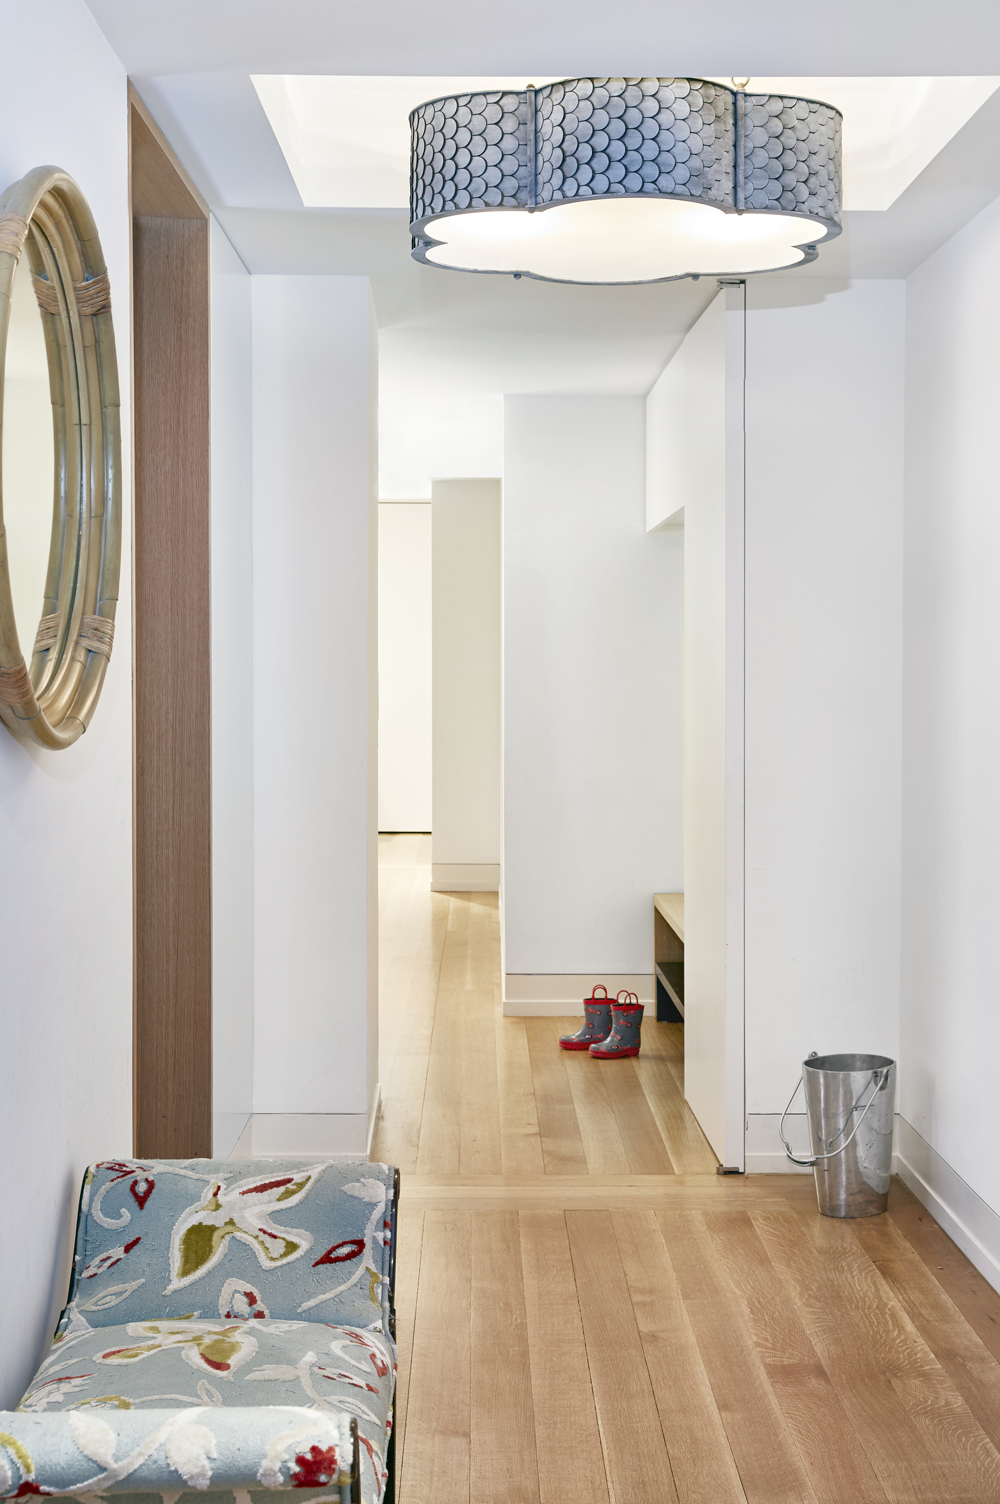 Urban-Electric-Company-Hallway-Light-Rain-Boots-JMorris-Design-Interior-Designer-Brooklyn-New-York-Online.jpg